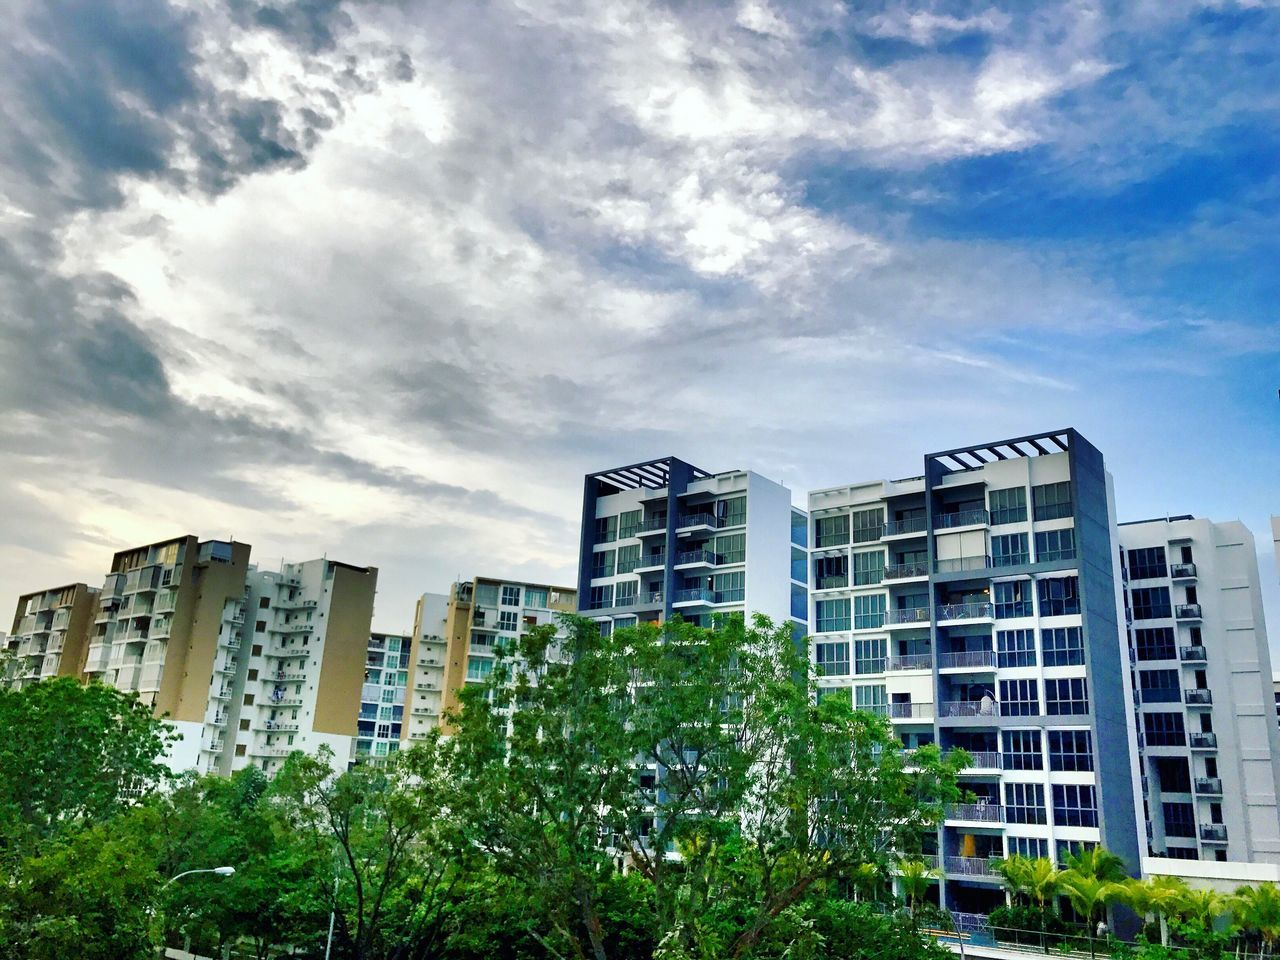 building exterior, architecture, city, modern, skyscraper, sky, built structure, low angle view, city life, no people, tree, growth, outdoors, day, cityscape, apartment